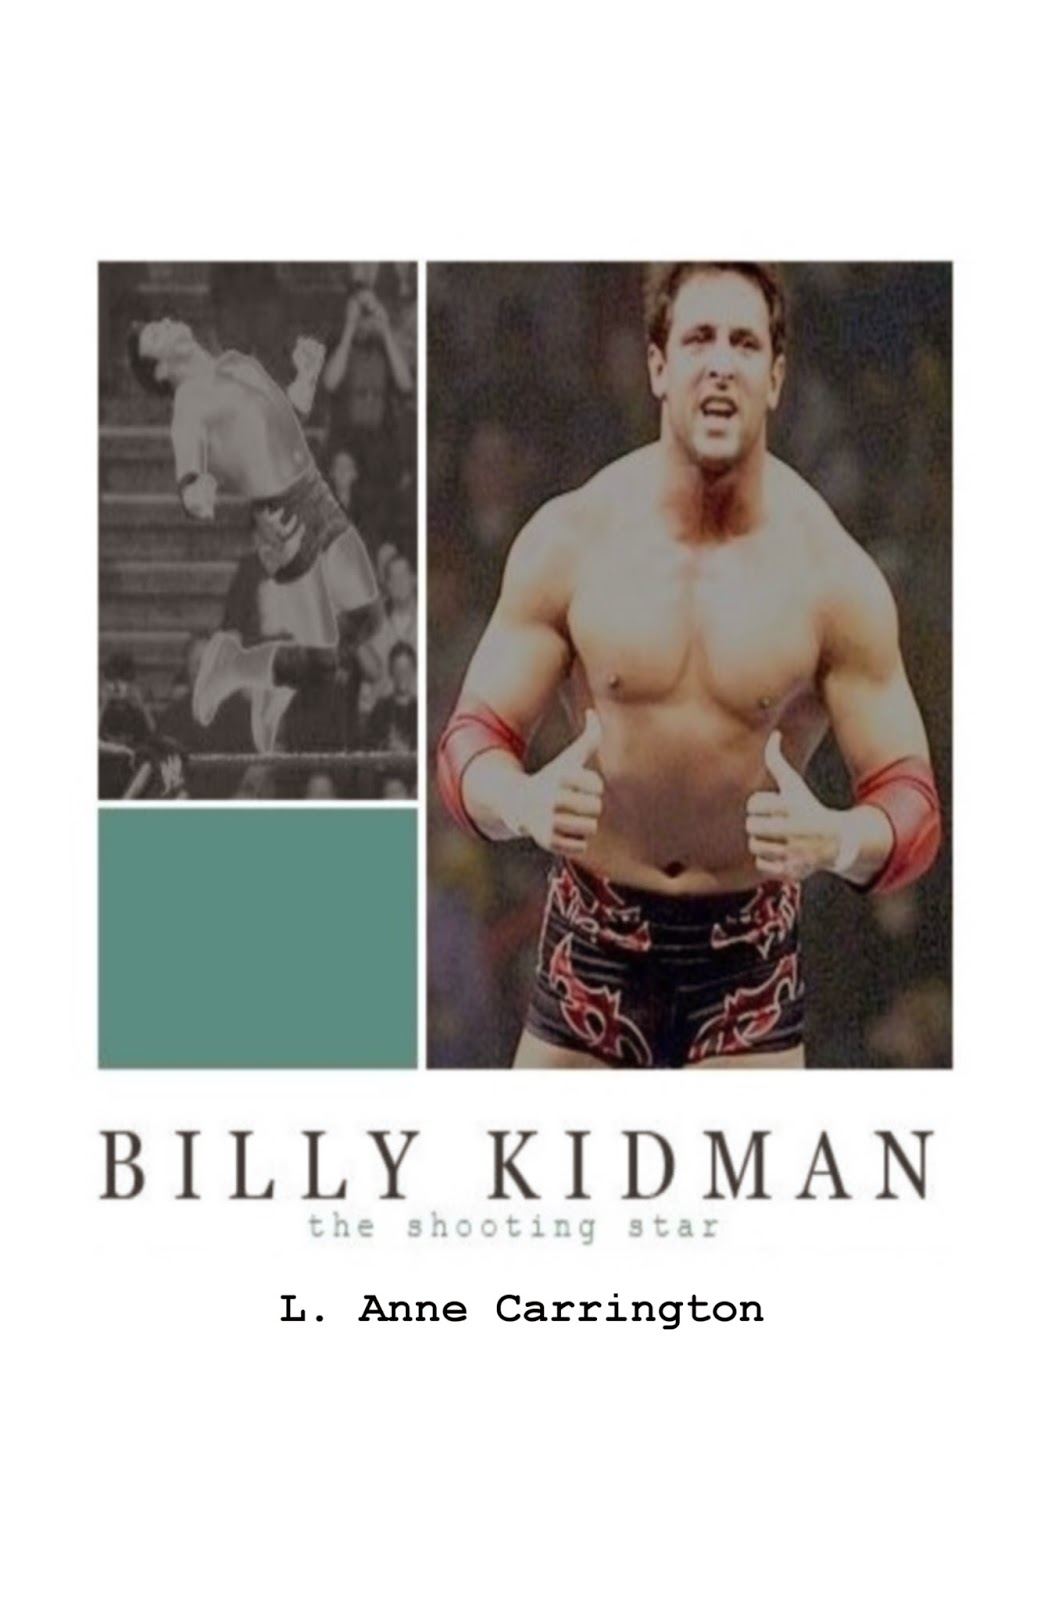 http://www.amazon.com/Billy-Kidman-Shooting-Anne-Carrington-ebook/dp/B00IPW616C/ref=la_B0055STQL6_1_1?s=books&ie=UTF8&qid=1399920440&sr=1-1